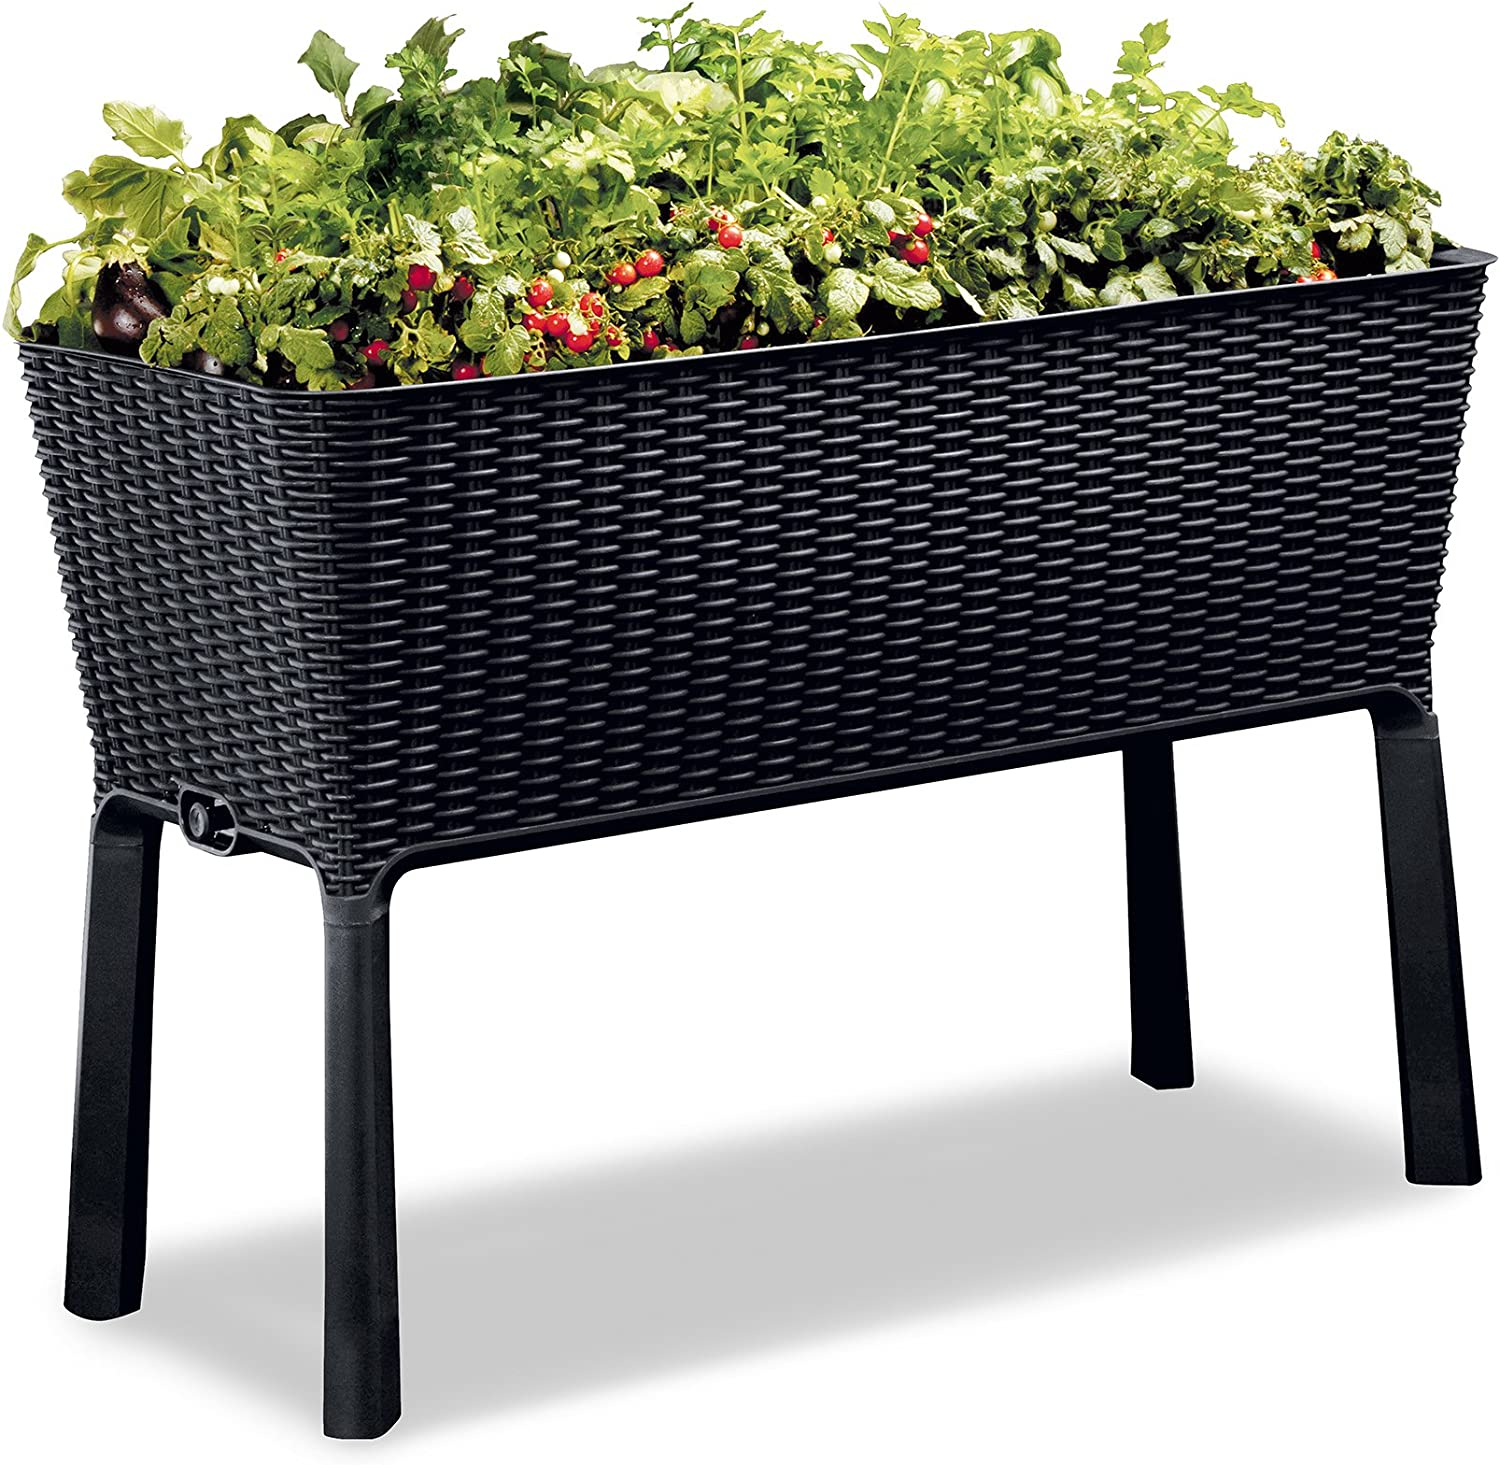 Free Shipping Cheap Bargain Gift Keter 238699 Easy Grow Garden Bed Anthracite Ranking TOP16 Elevated